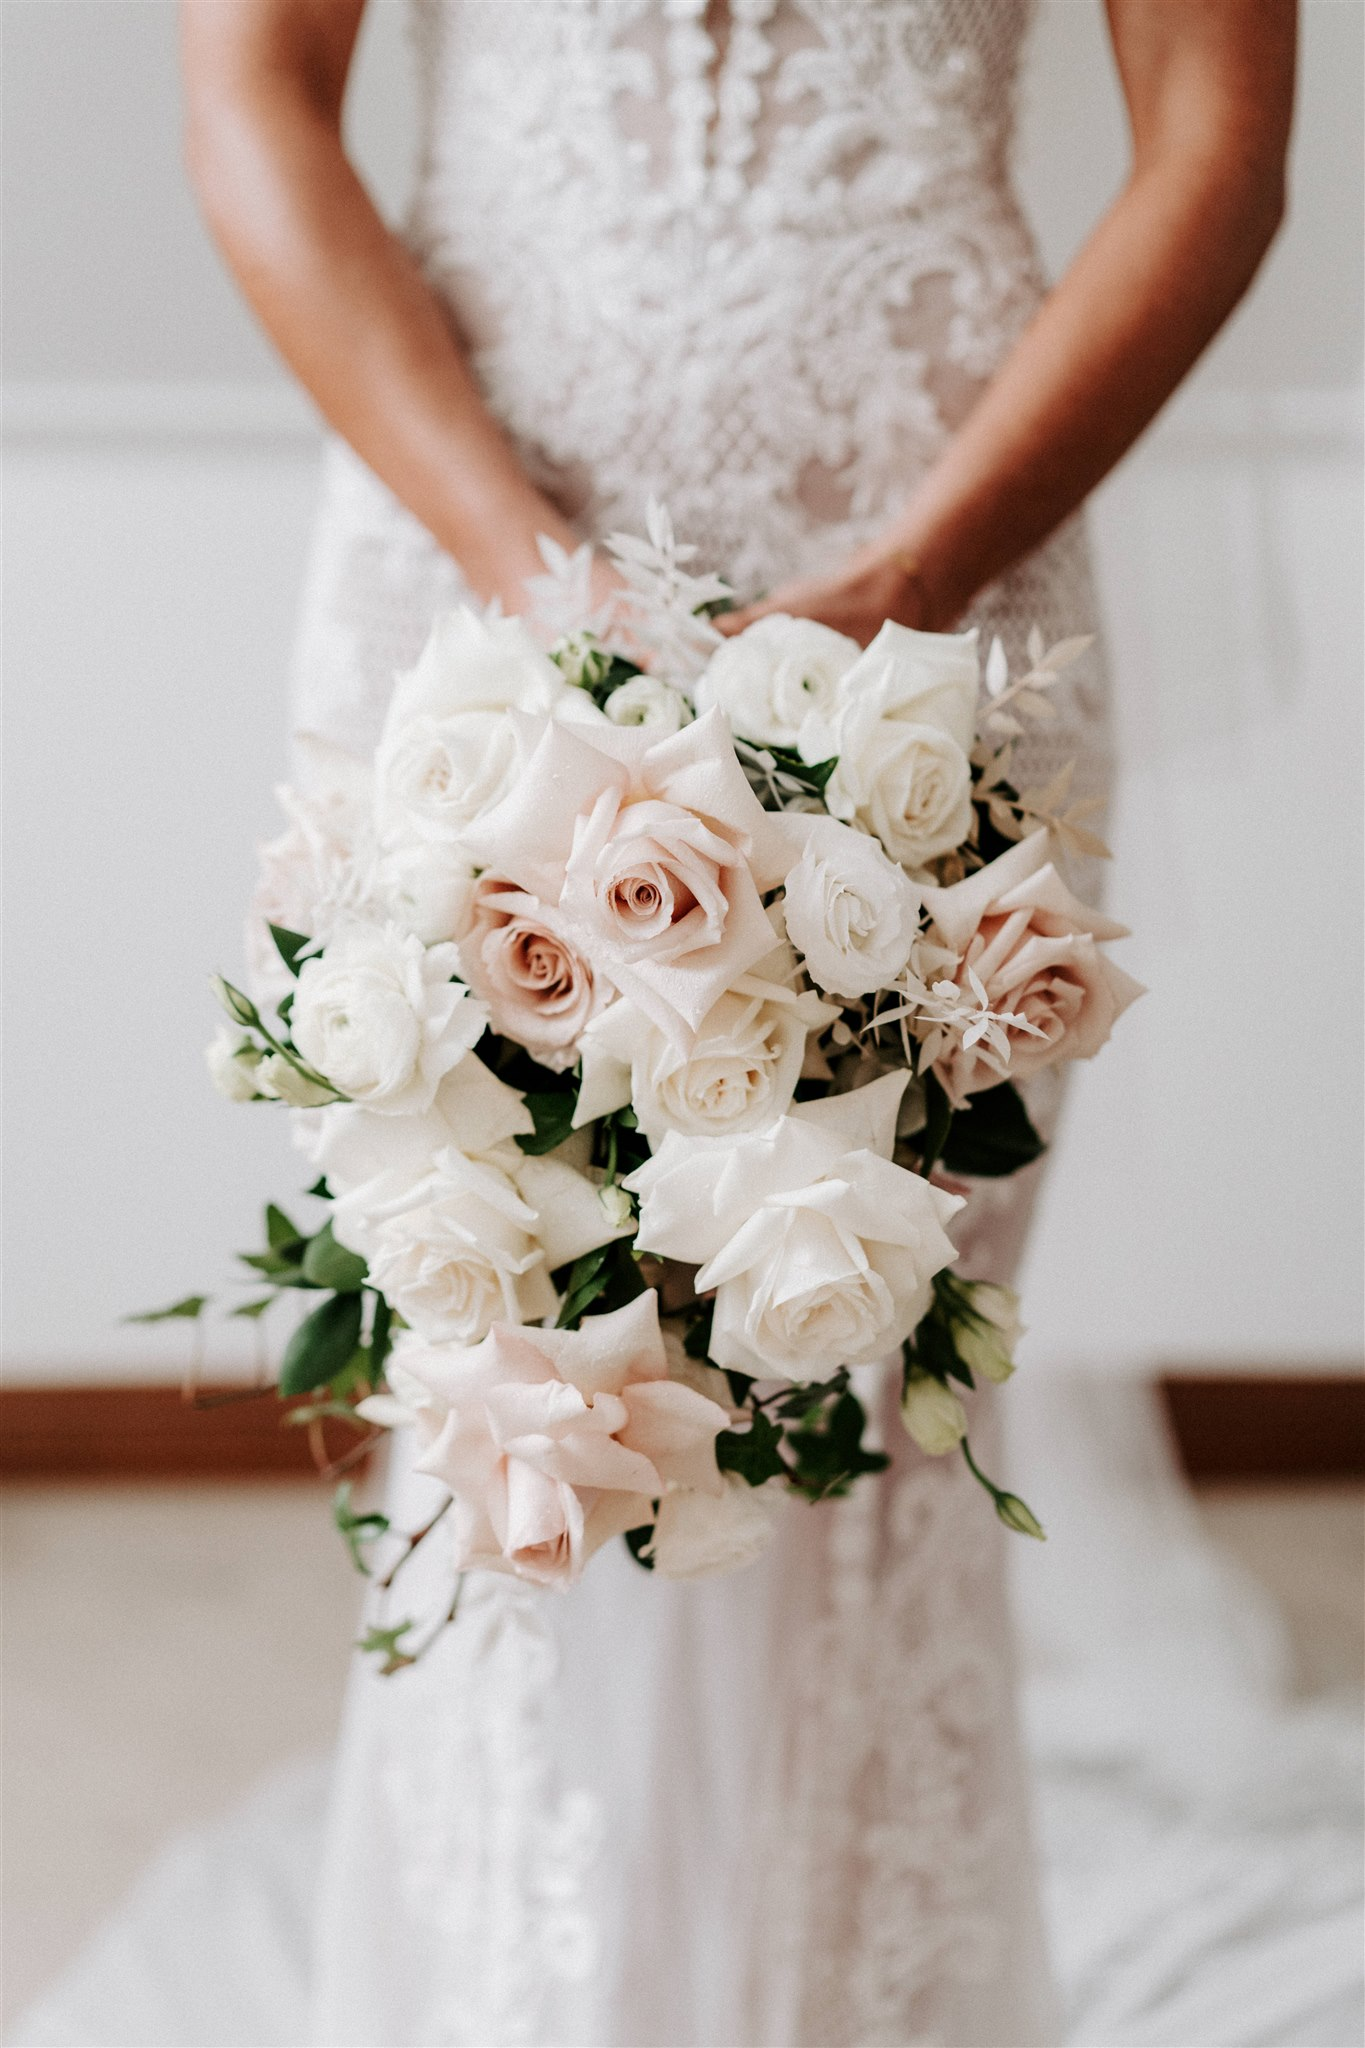 Muted Pink Roses, White Roses With Lush Green Foliage Accents